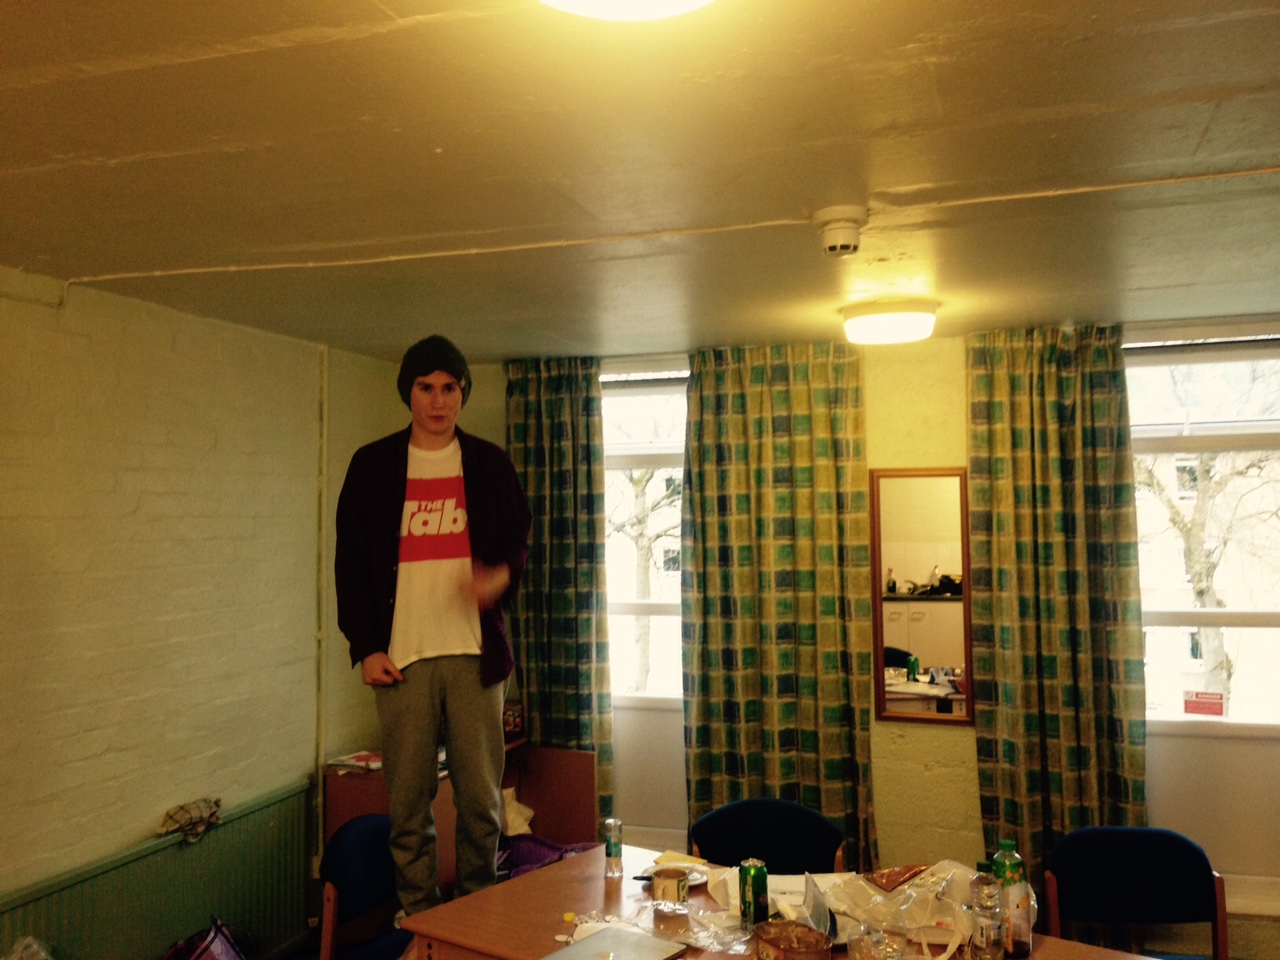 The flat was filthy